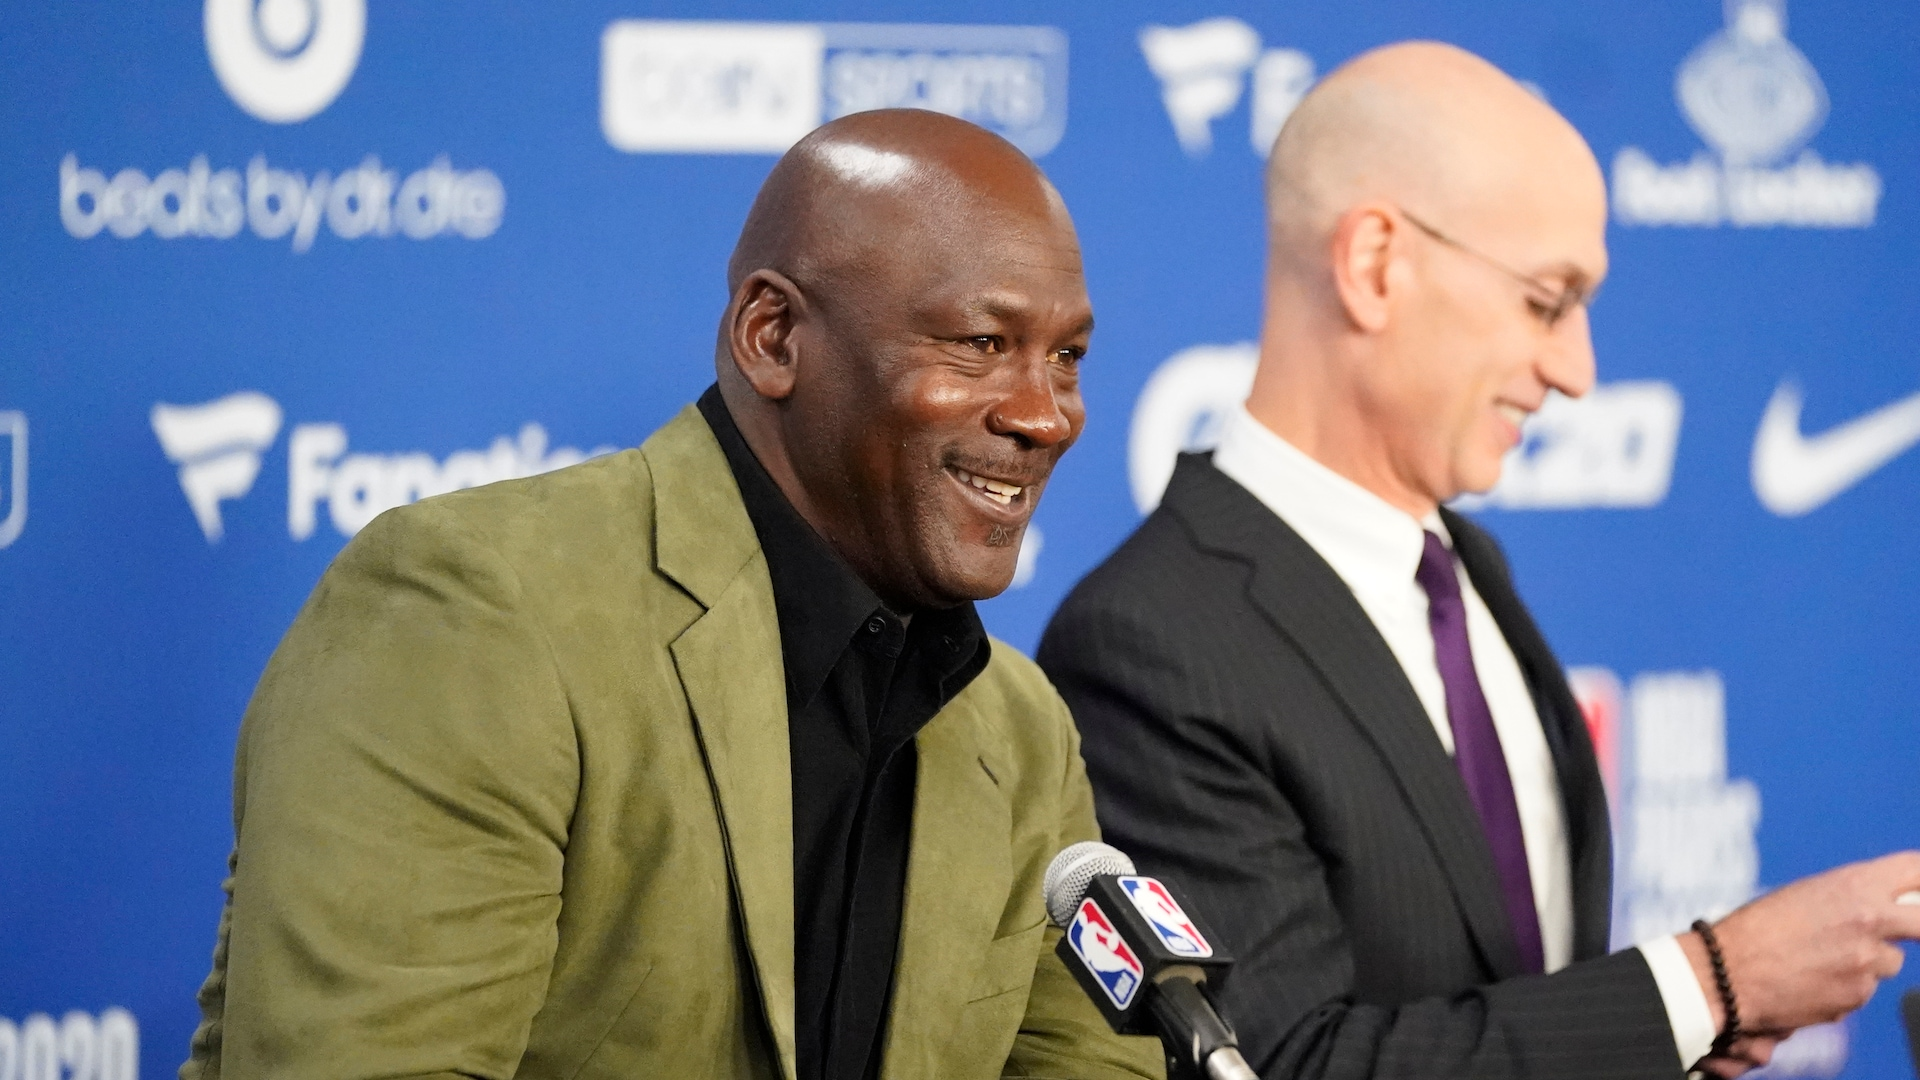 In Paris, Michael Jordan takes questions on many NBA topics